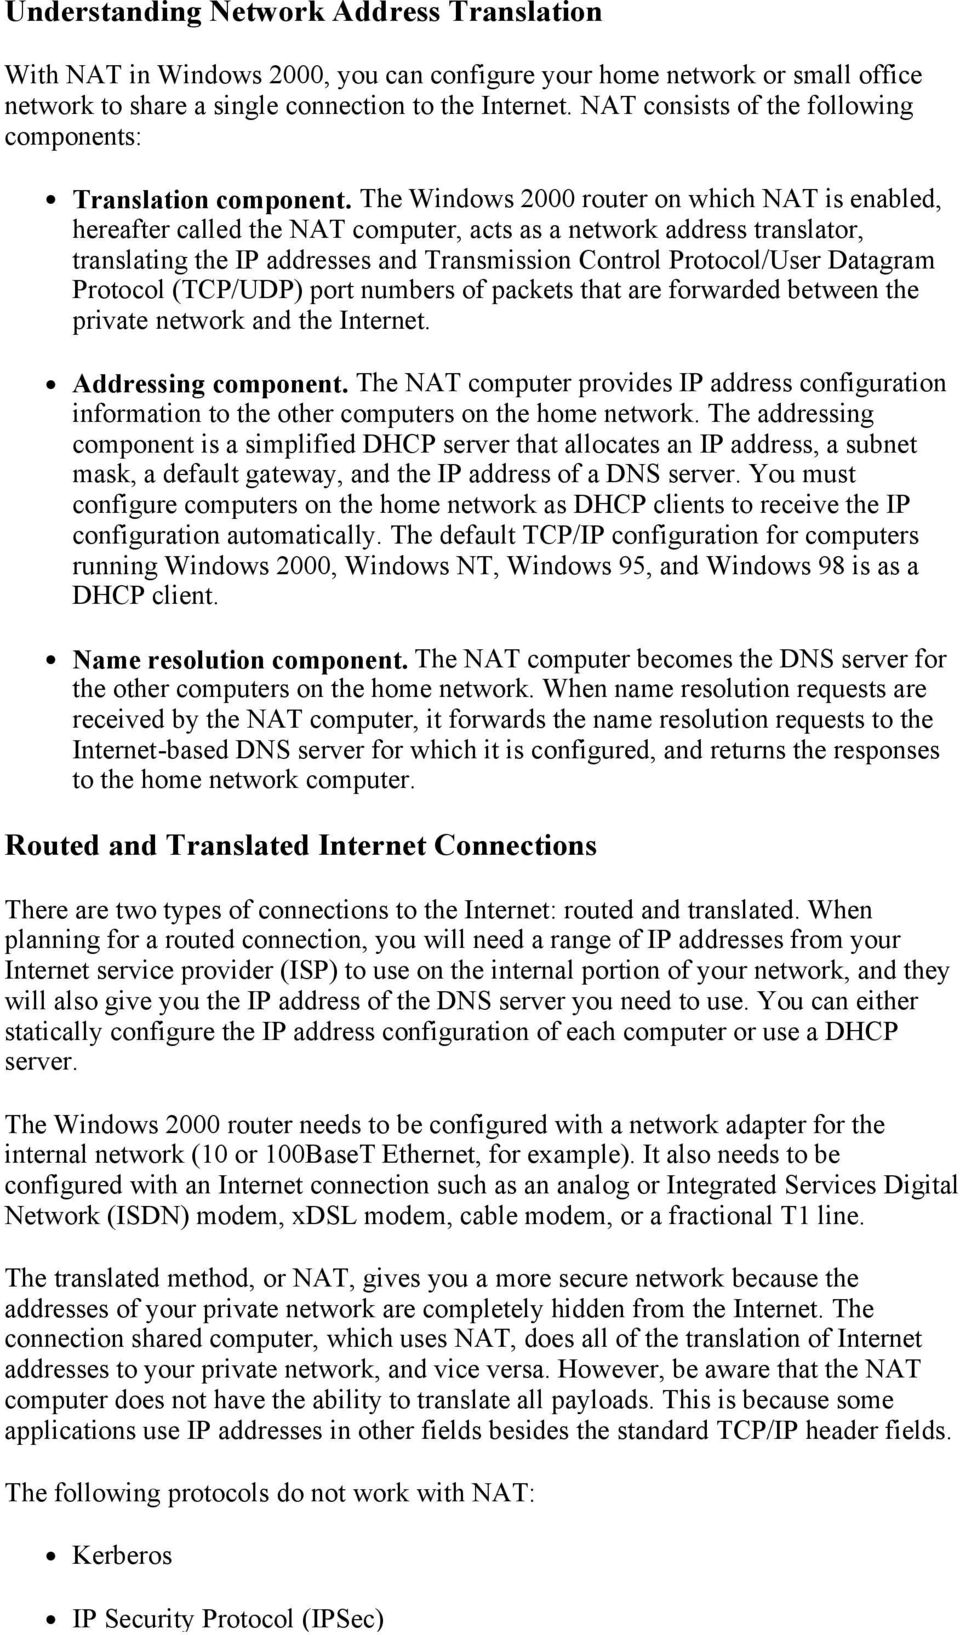 The Windows 2000 router on which NAT is enabled, hereafter called the NAT computer, acts as a network address translator, translating the IP addresses and Transmission Control Protocol/User Datagram